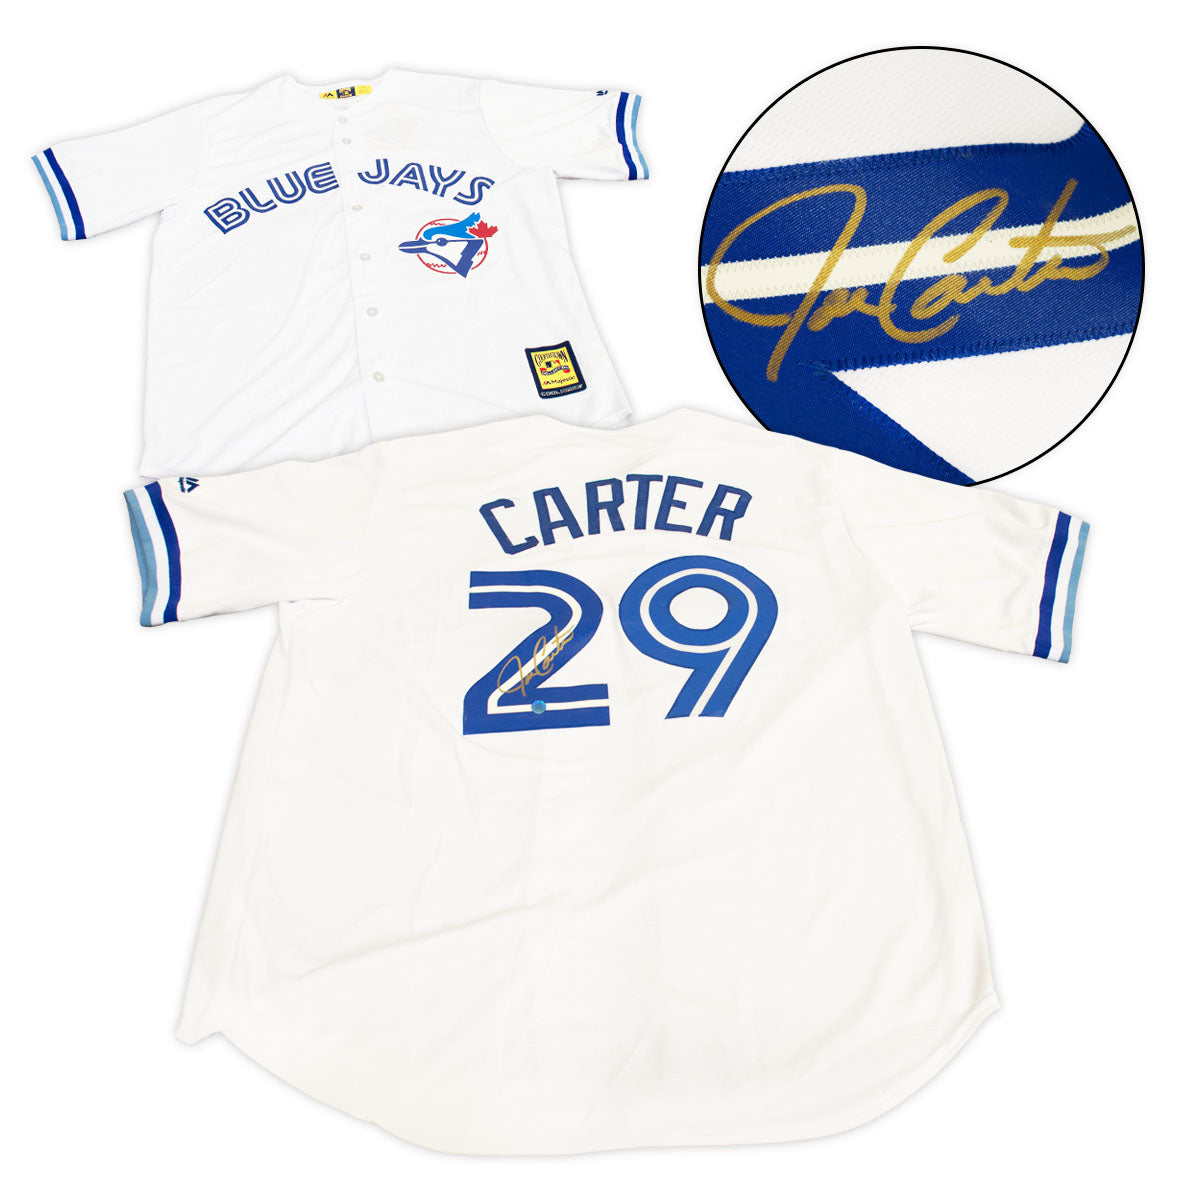 timeless design a8696 58749 Joe Carter Toronto Blue Jays Autographed 1993 Retro Cooperstown Baseball  Jersey